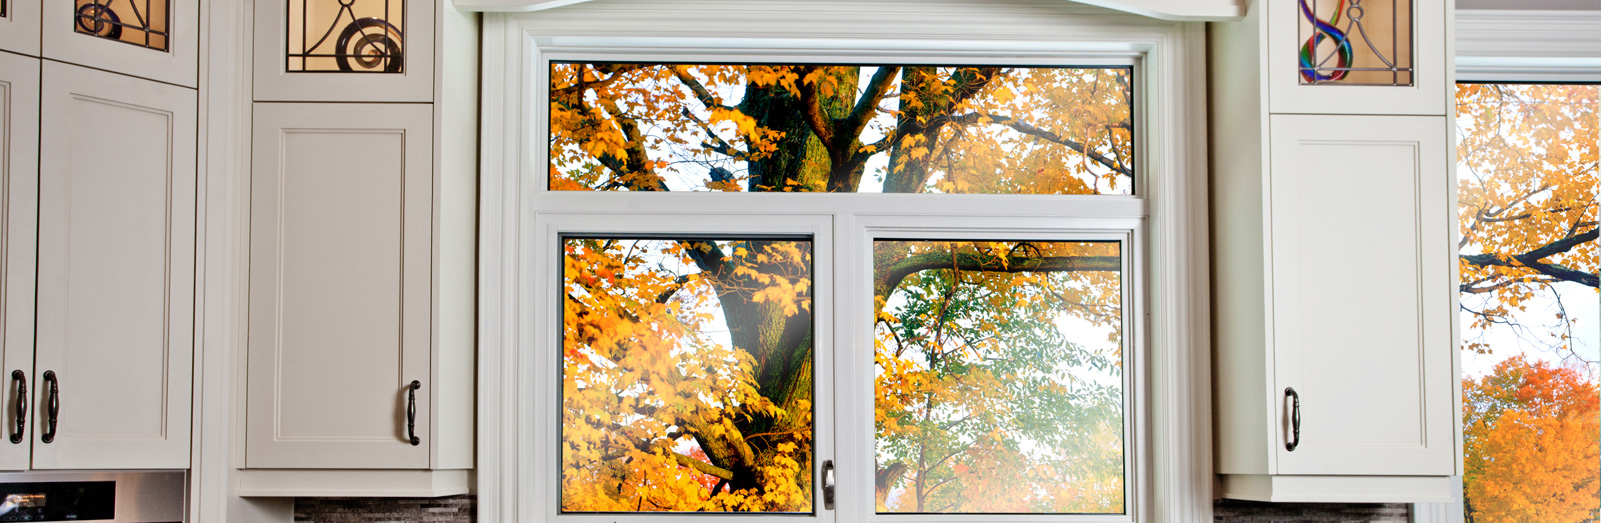 Casement Windows and Awnings